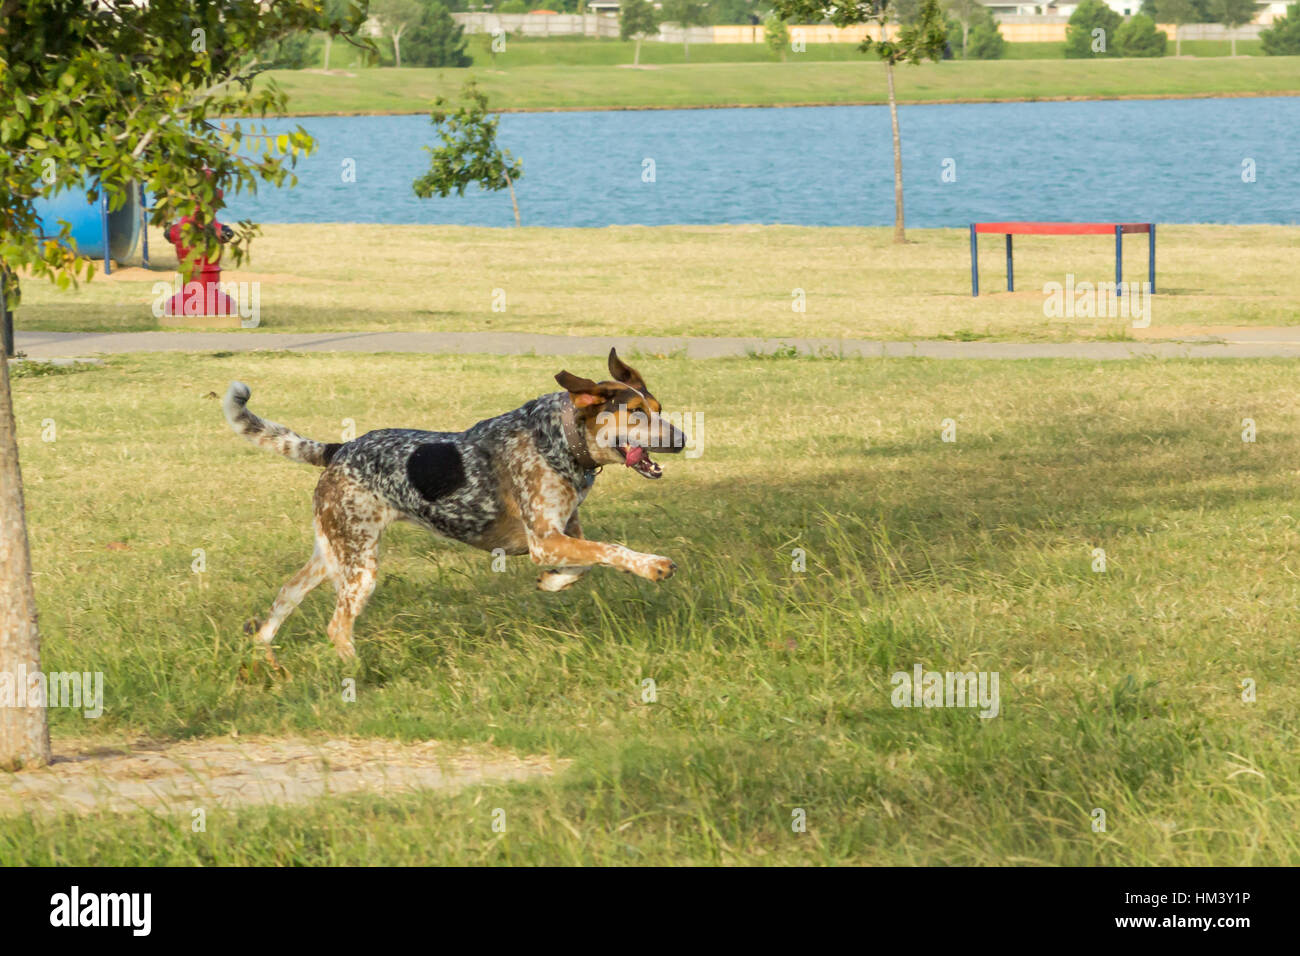 Bluetick hound and tricolored treeing walker coondog running through a dog park, with an expression of joy and excitement - Stock Image